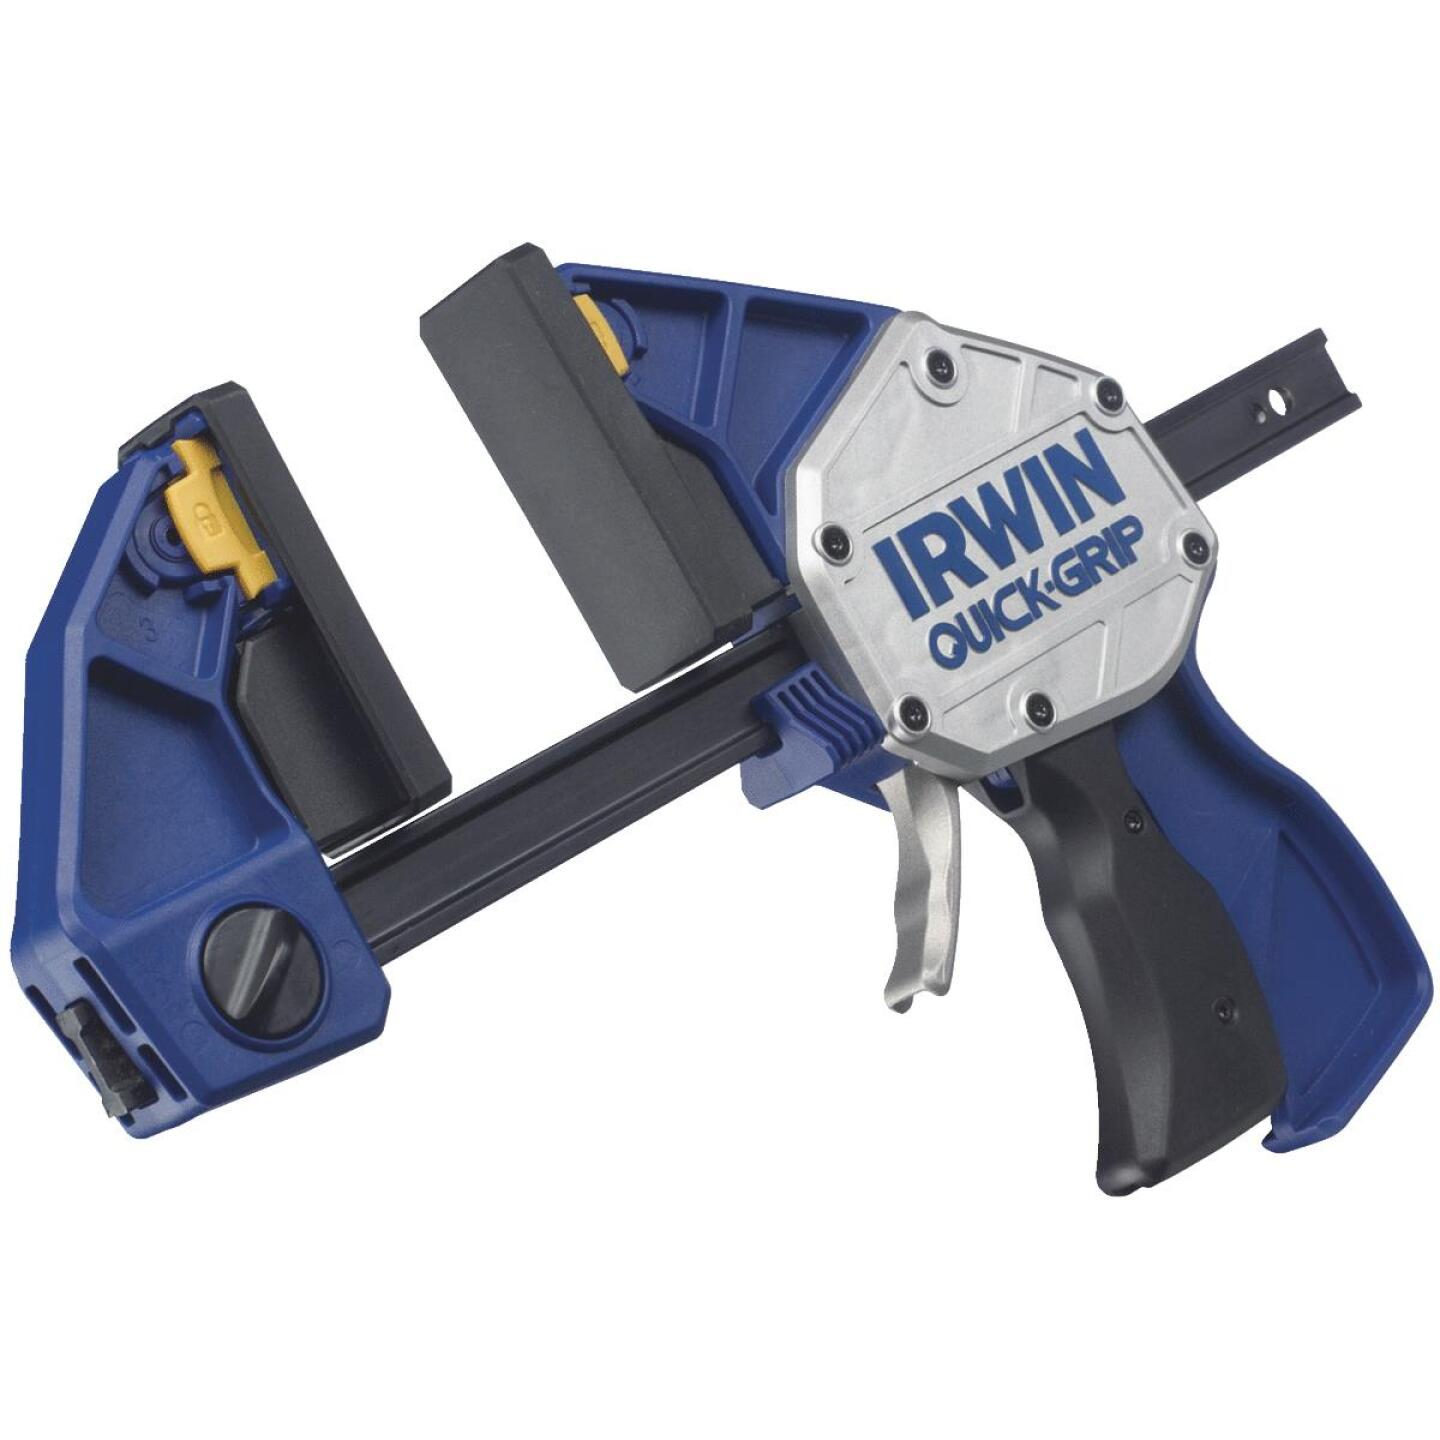 Irwin Quick-Grip XP 6 In. x 3-1/4 In. One-Hand Bar Clamp and Spreader Image 1